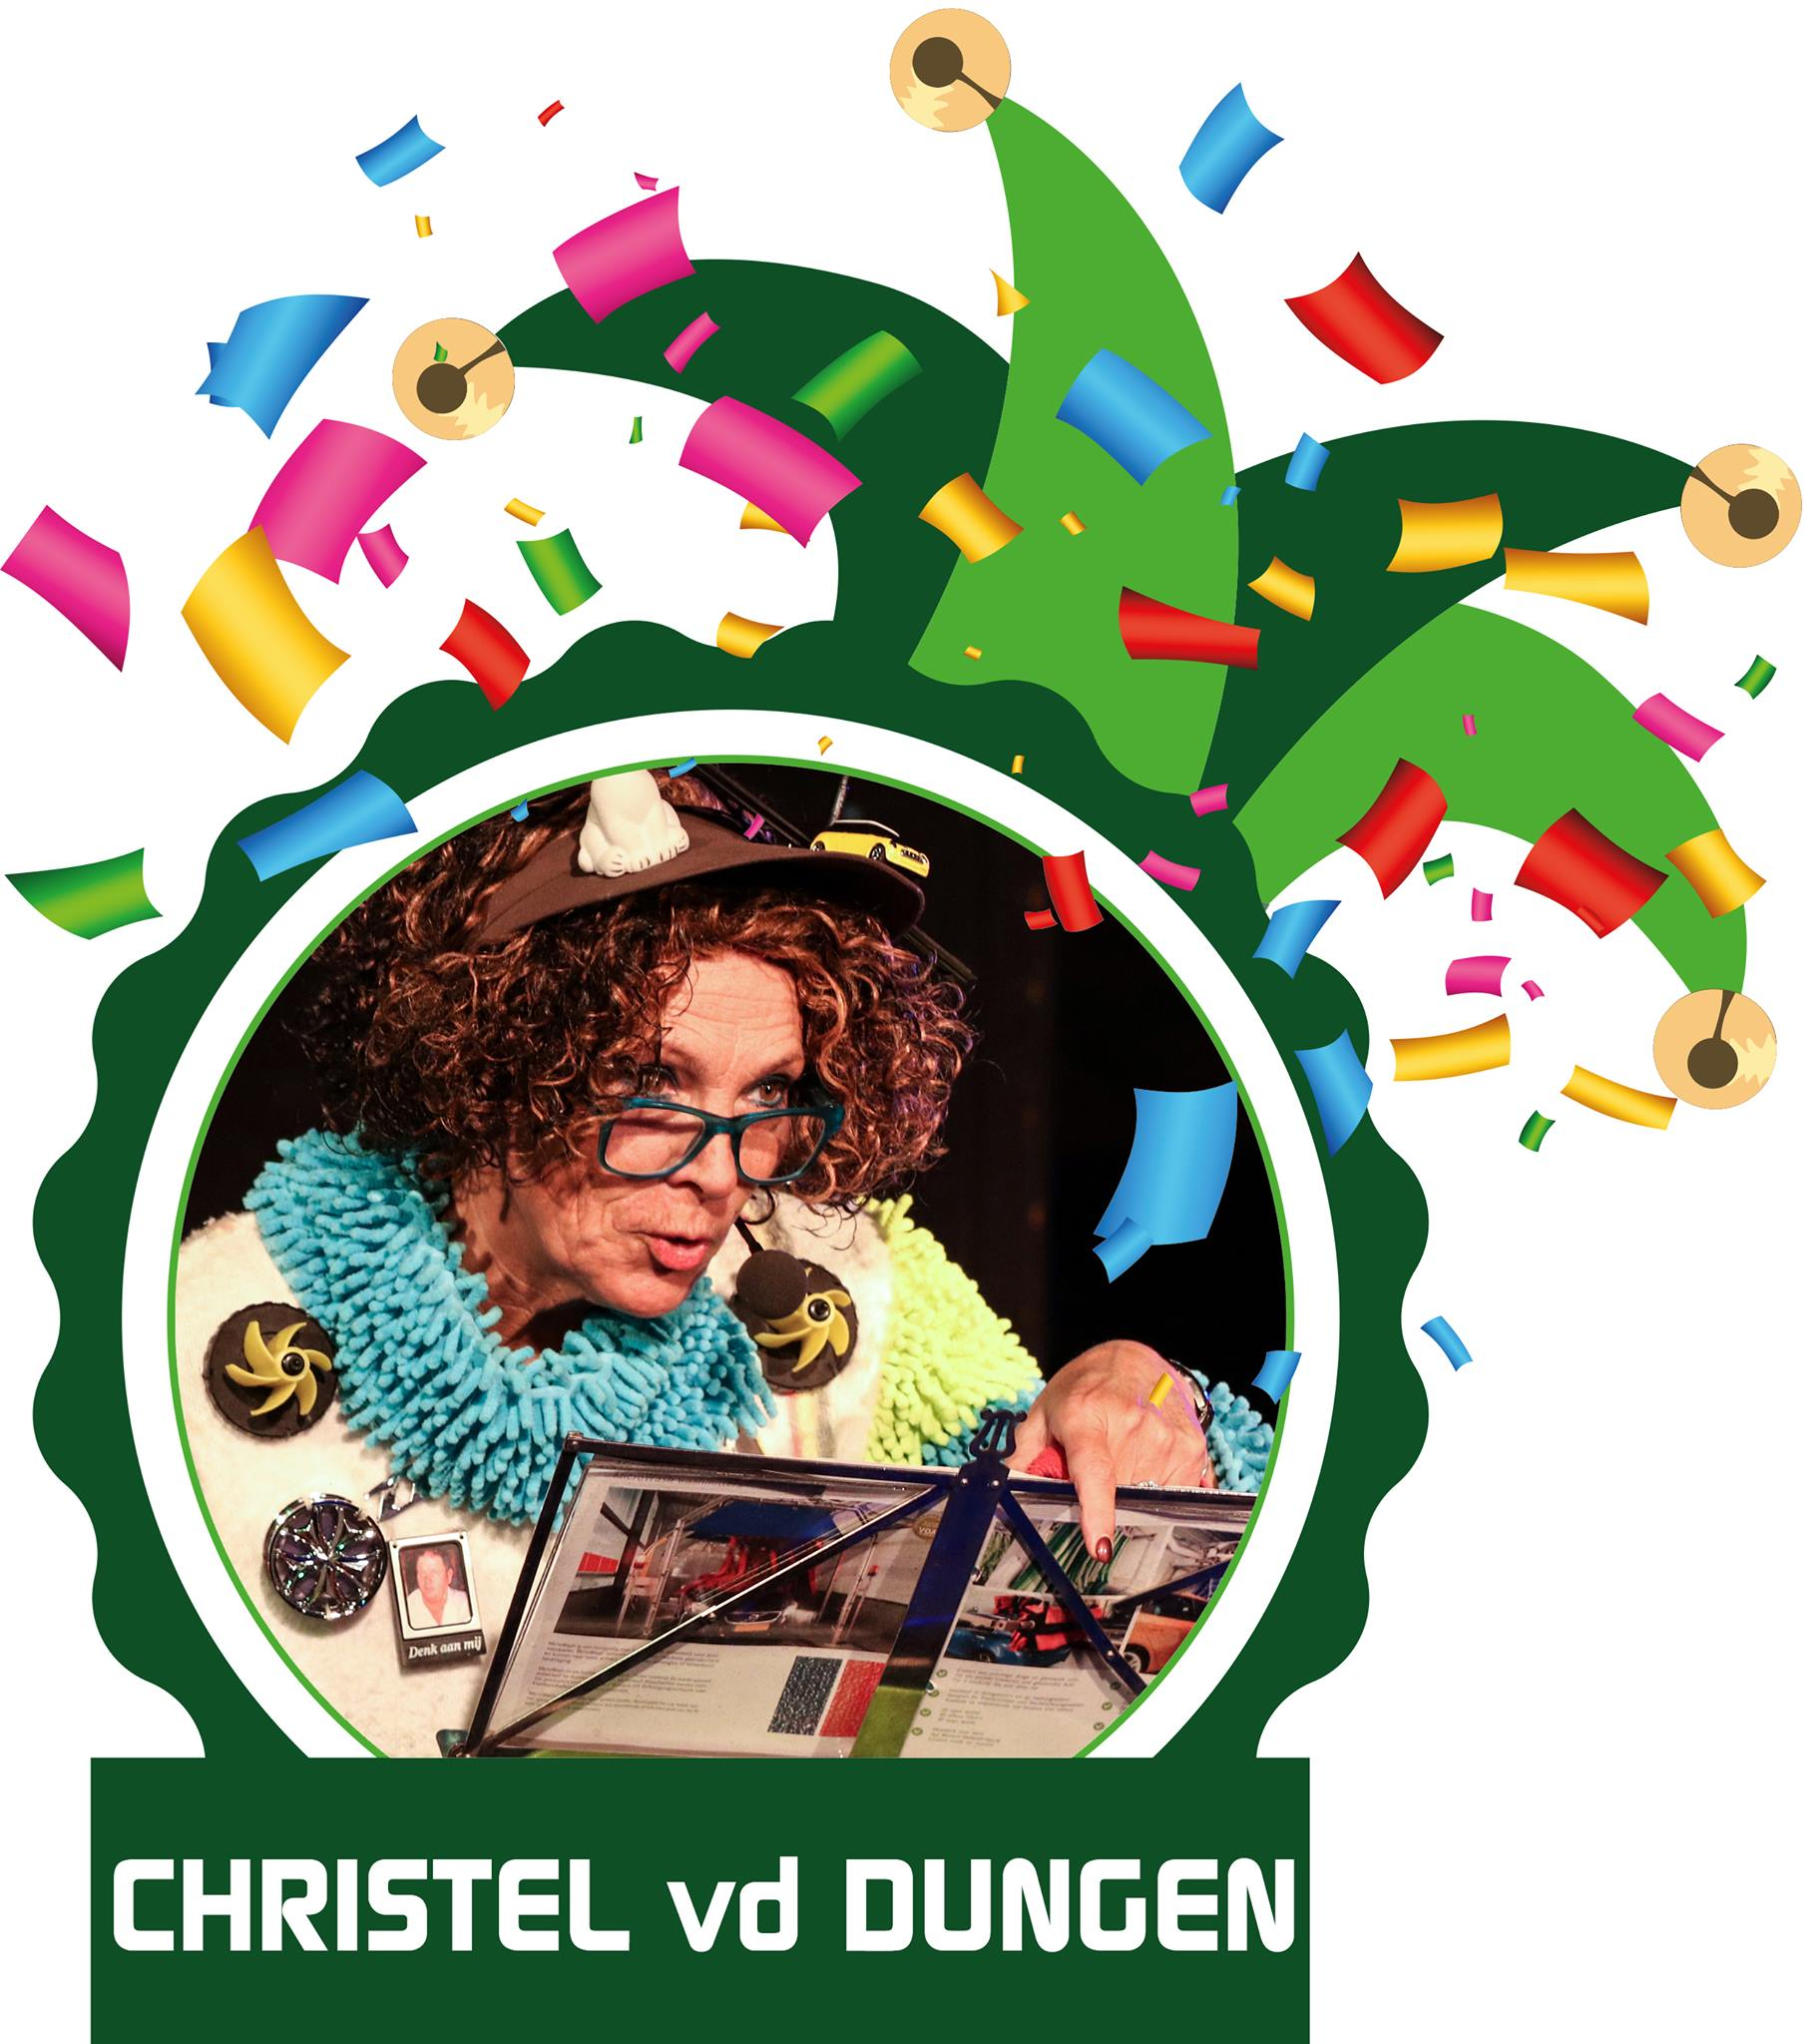 Christel vd Dungen is tonprater nummer vier